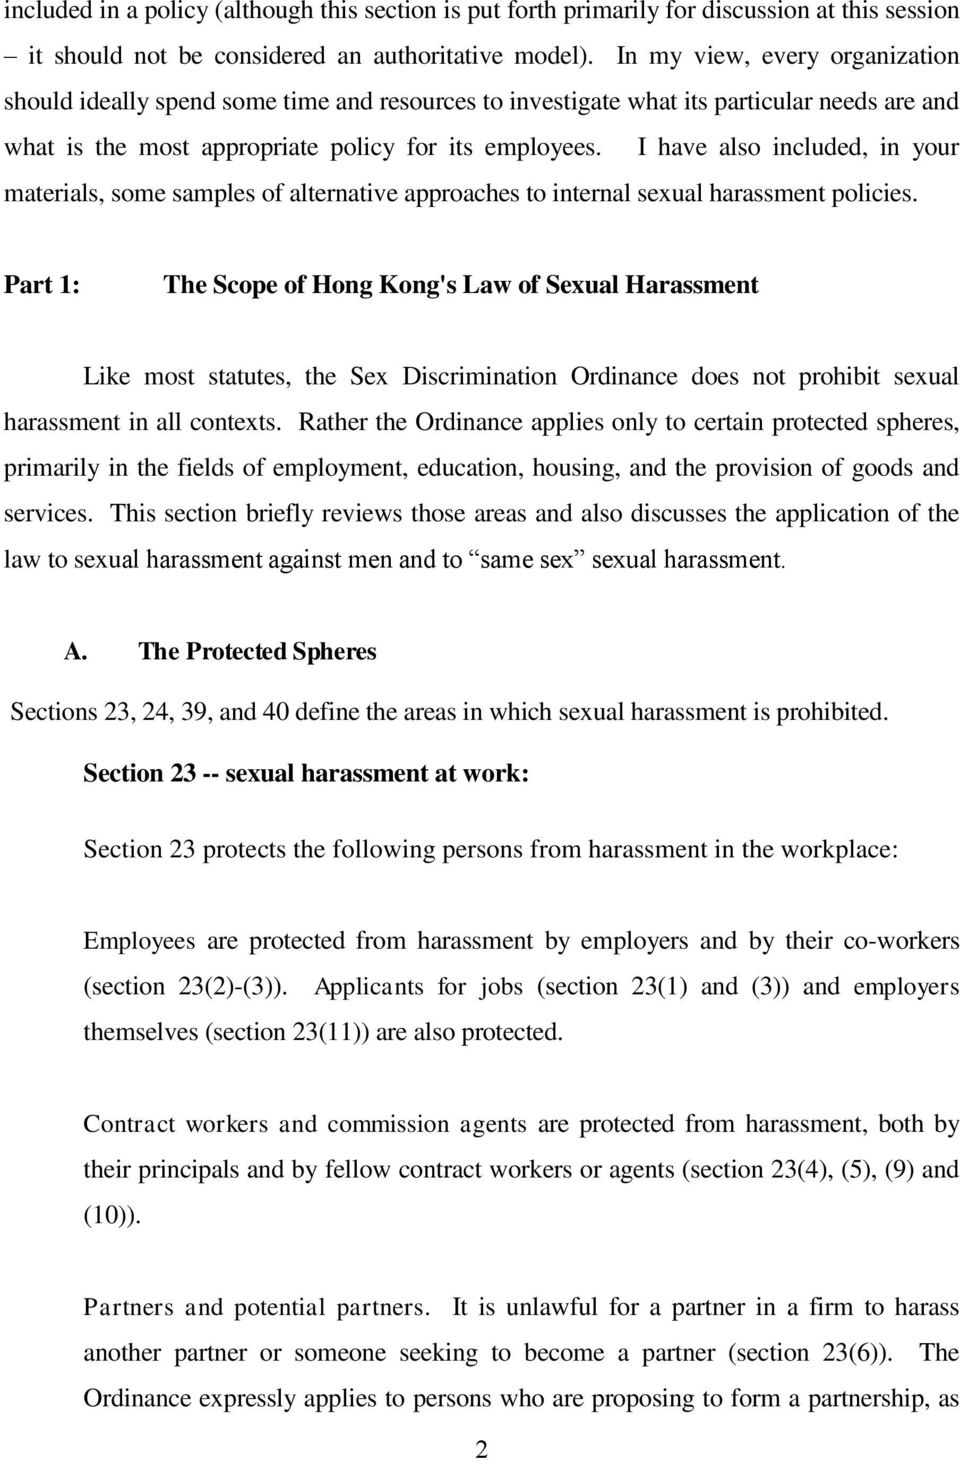 I have also included, in your materials, some samples of alternative approaches to internal sexual harassment policies.